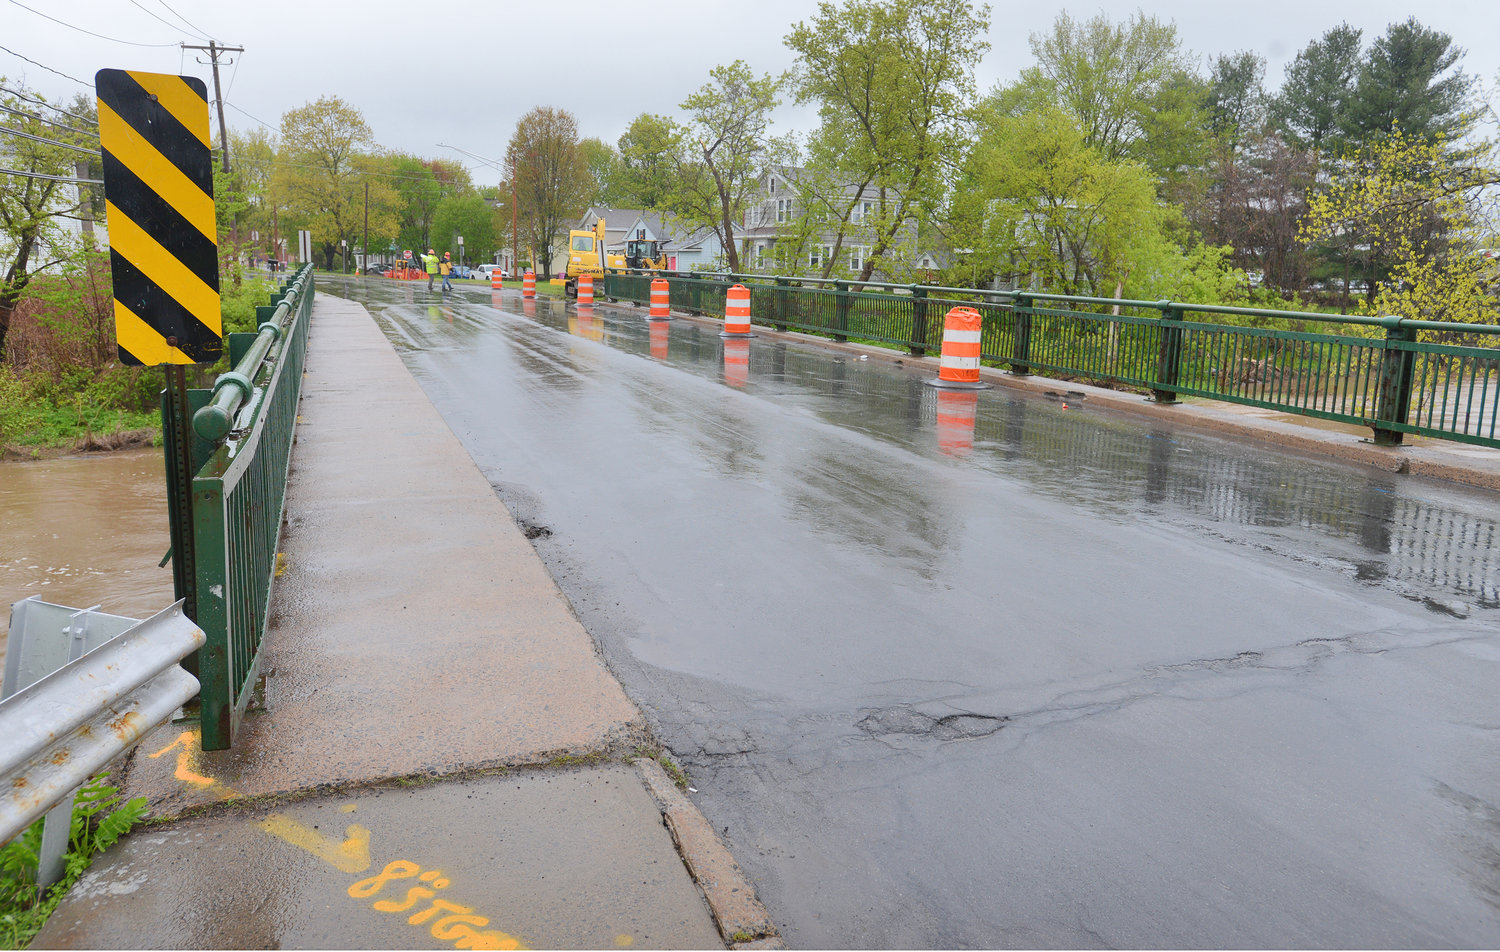 WORK UNDERWAY — The Utica Street Bridge in Oriskany is in the preliminary stages of rehabilitation with a pedestrian bridge to soon be installed.  Work will commence on the bridge starting in June and last through October.